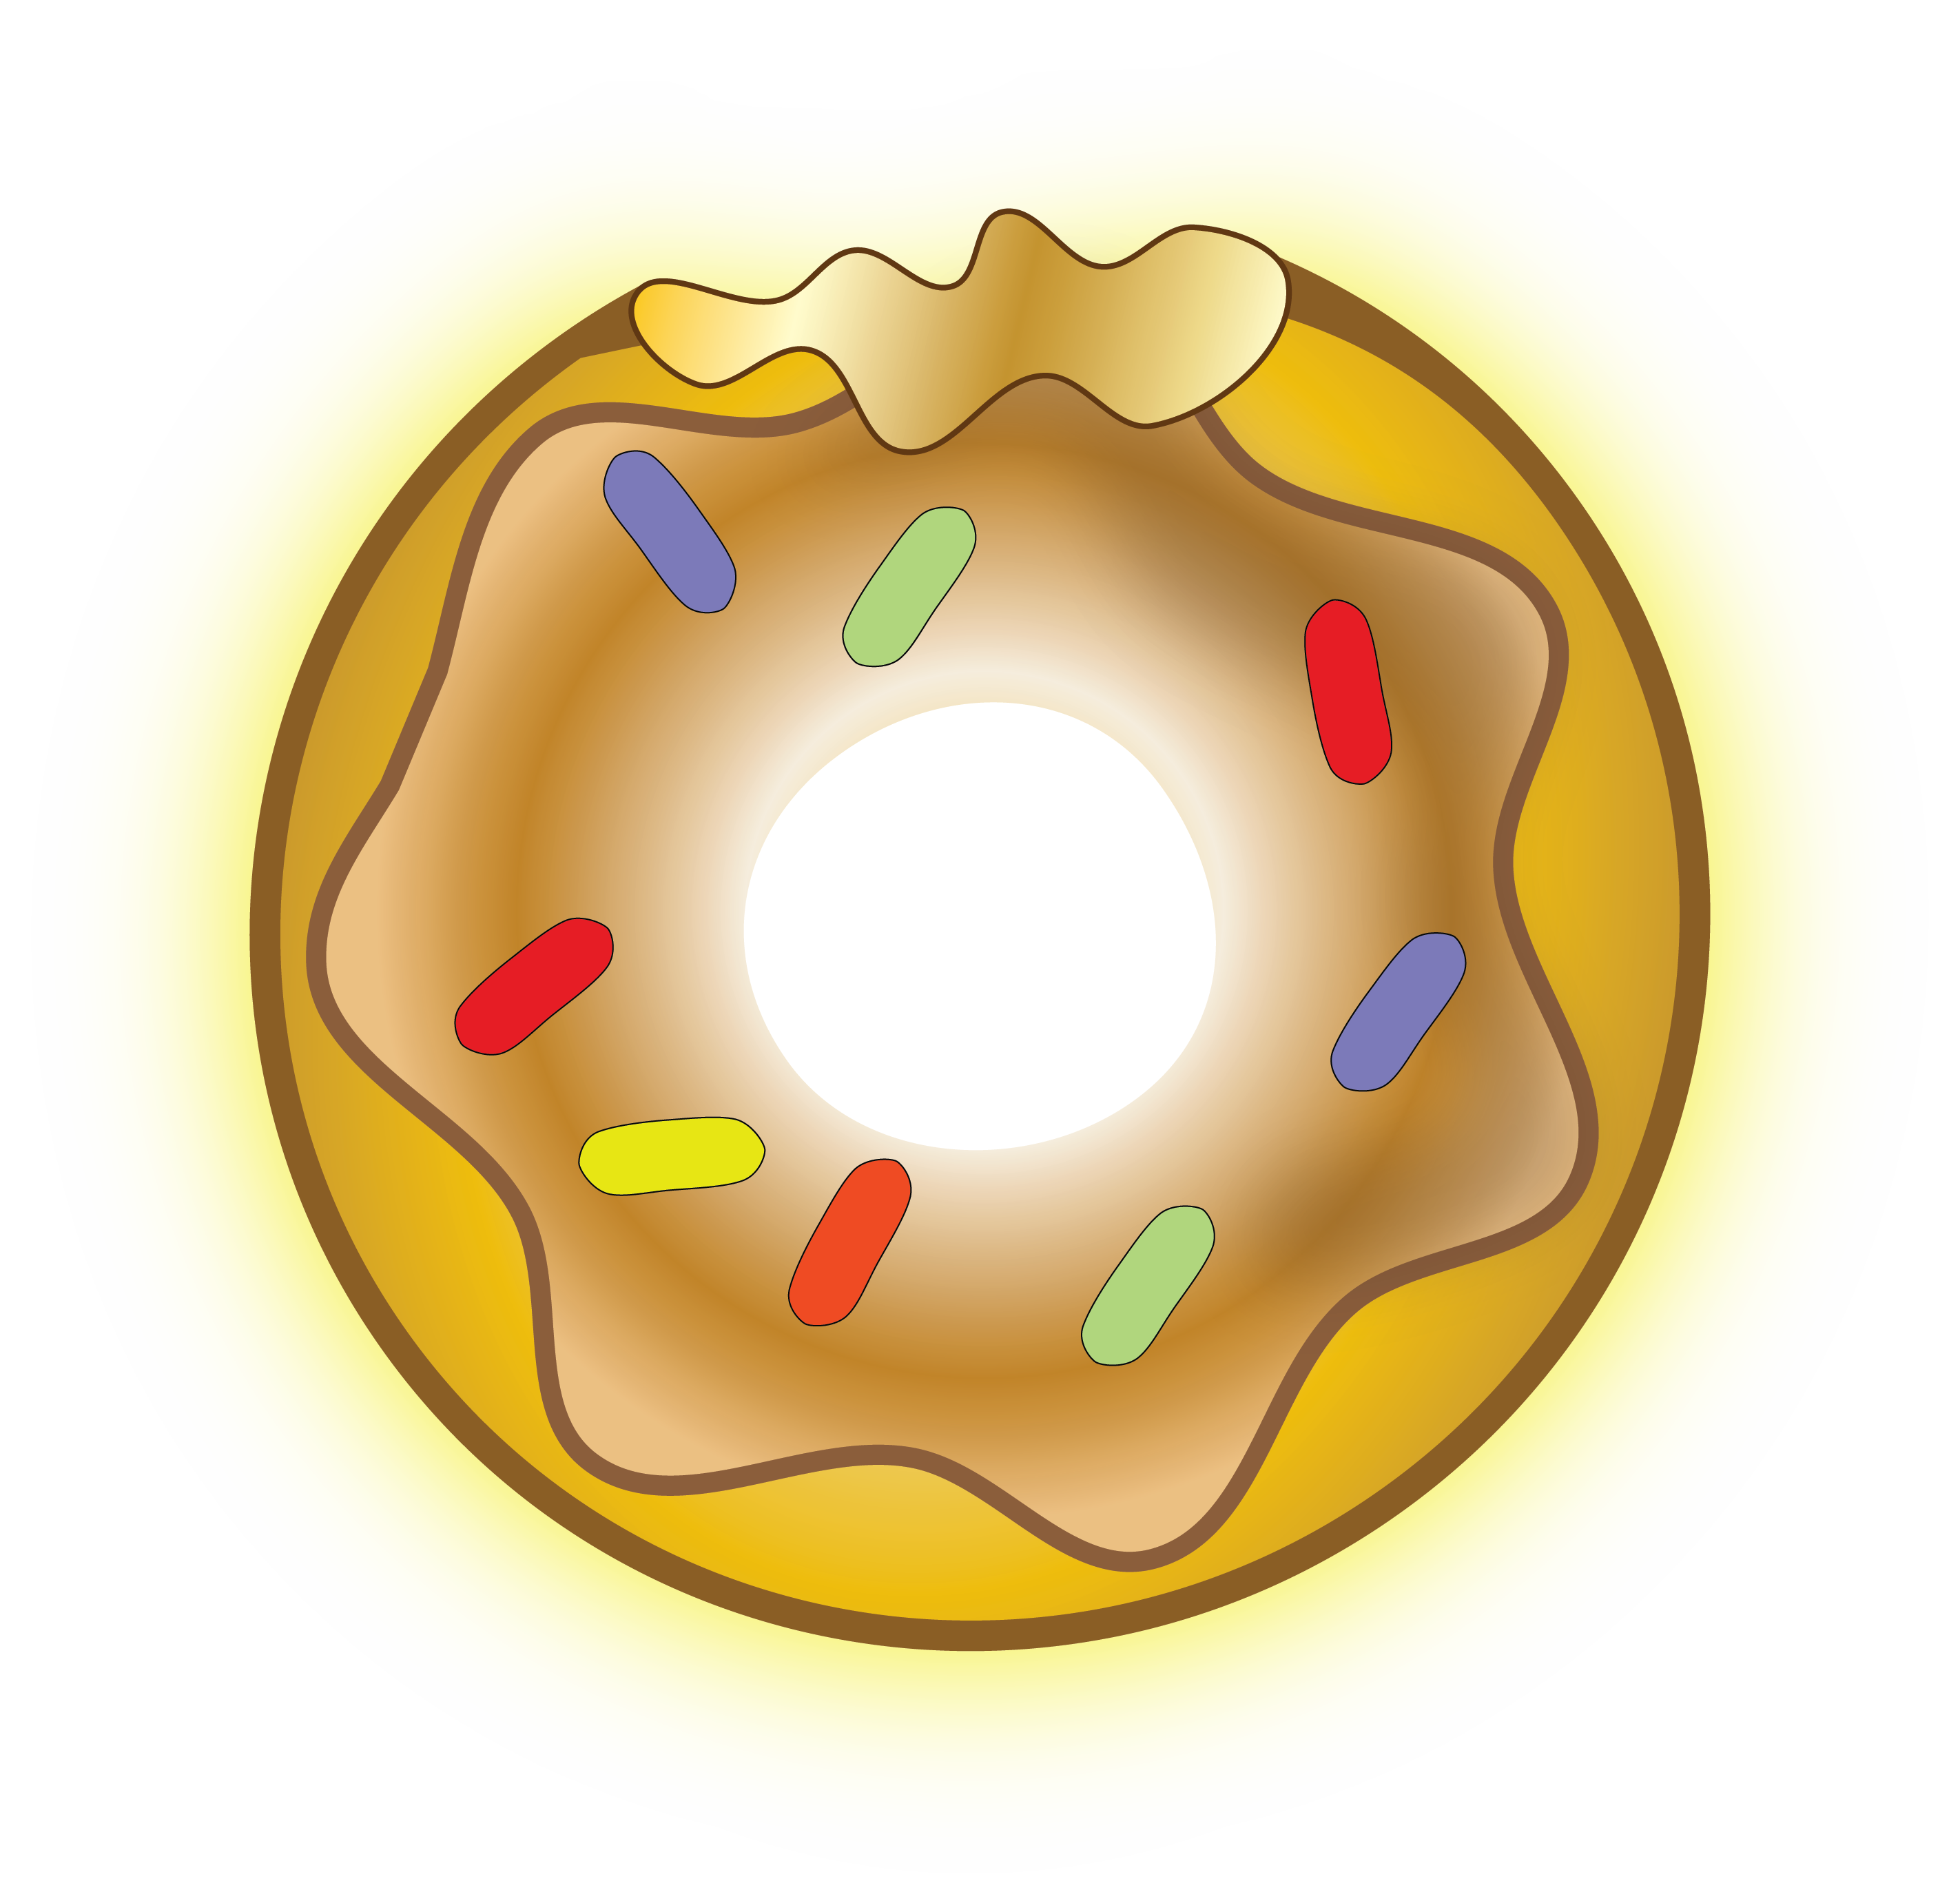 The simpsons donut png. Gold reflections from golden